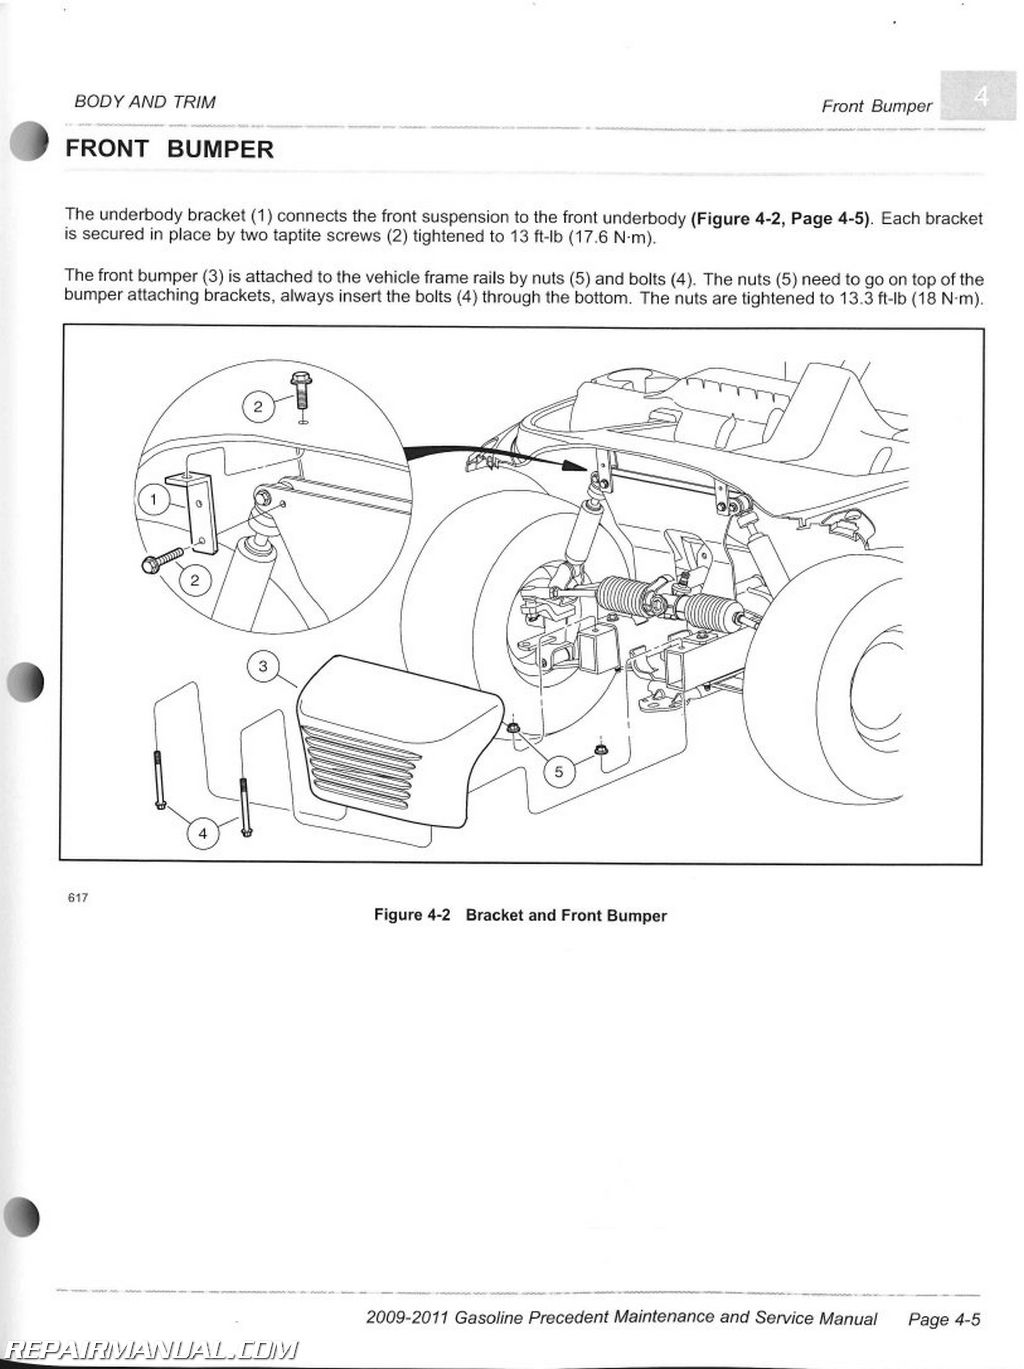 2009 Club Car Gas Wiring Diagram | Wiring Schematic Diagram Gas Club Car Wiring Diagram on